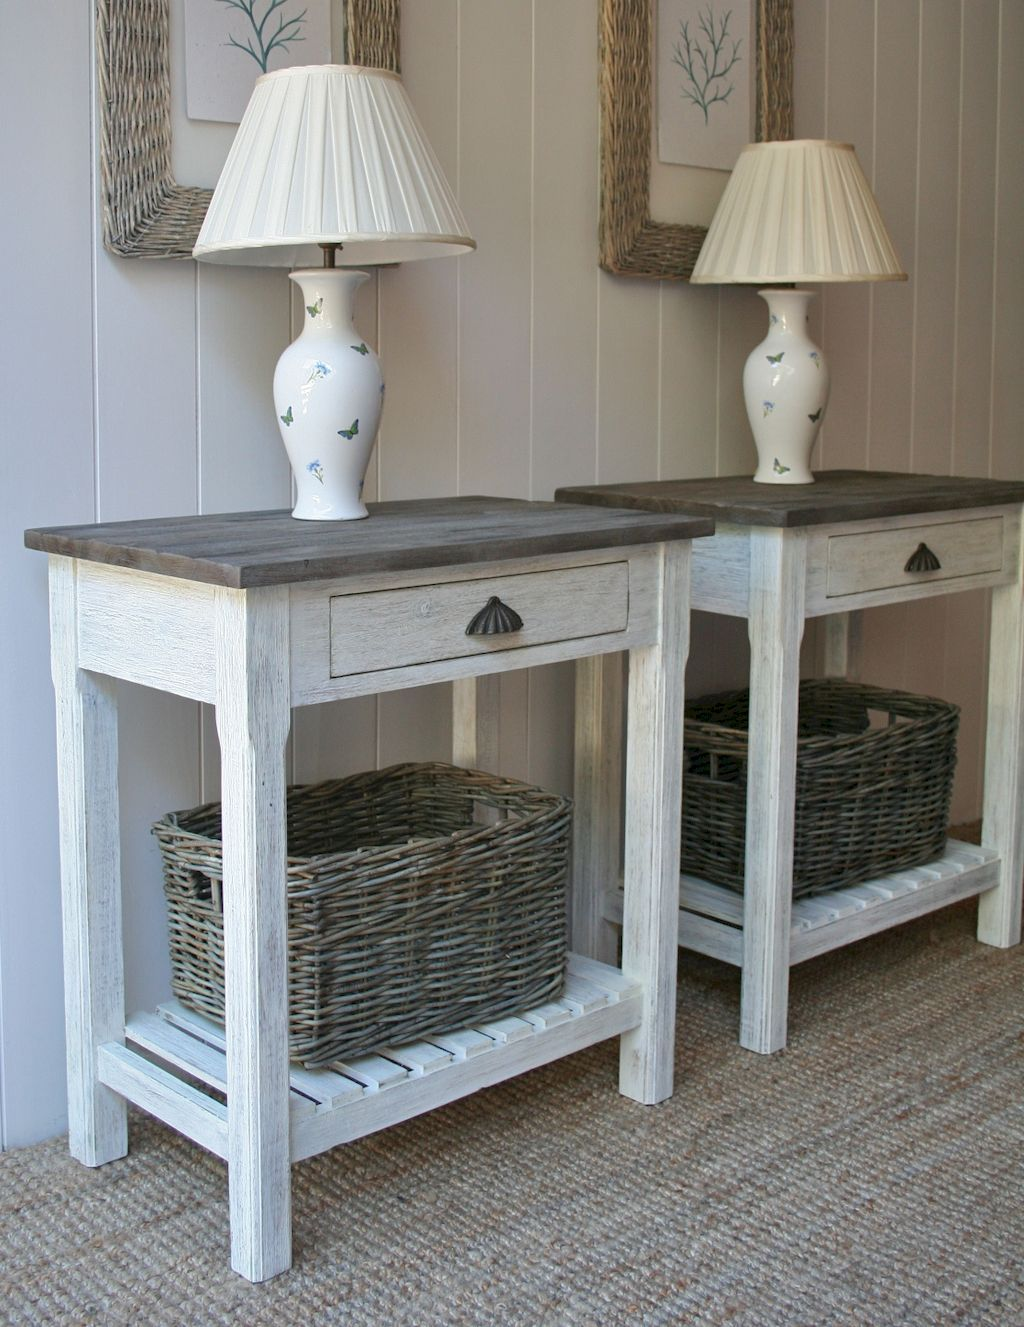 60 Beautiful Beside Table Decor Ideas Decor Table White End Tables Bedroom End Tables Decor